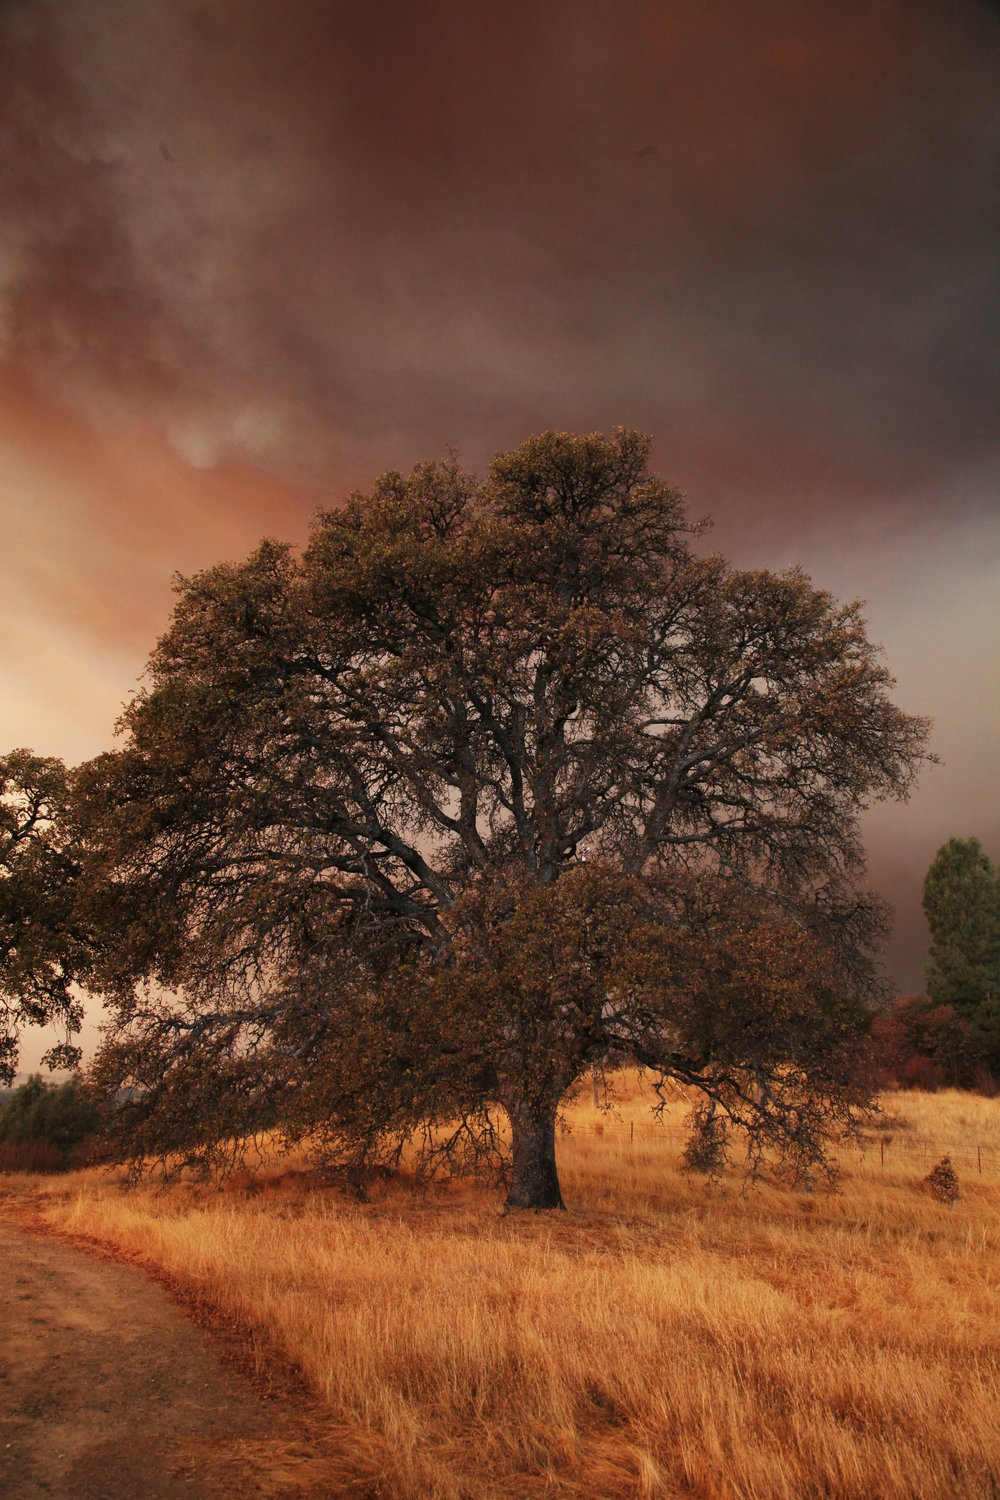 The landscape of the Sierra Nevada foothills is littered with scrub oak and grasses, extremely flammable fuels.